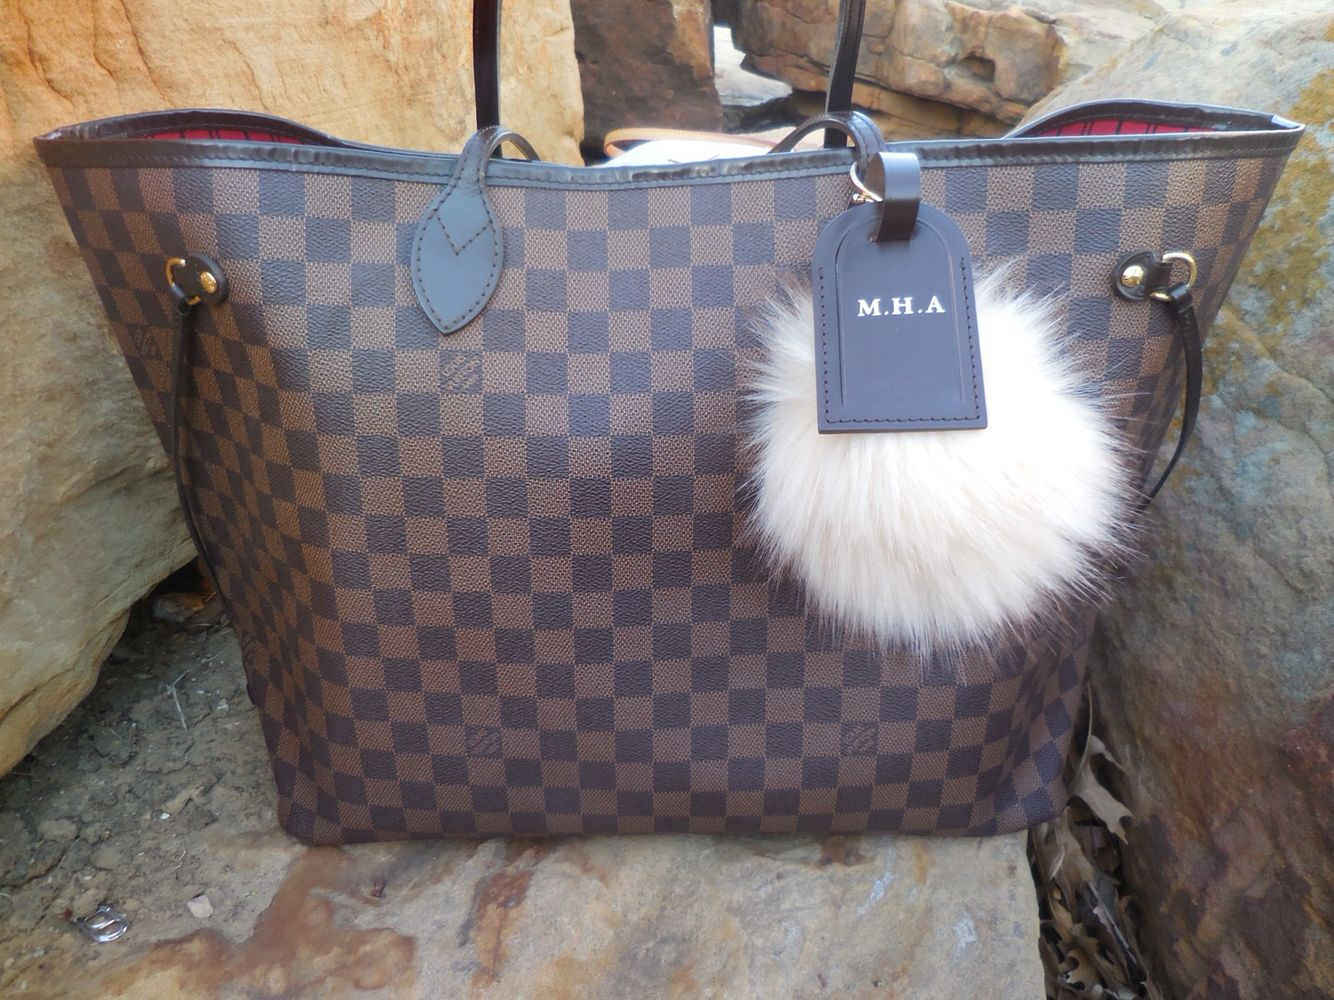 d241296bc296 This beauty is mine!! wooo hoooo Louis Vuitton Neverfull GM in Damier  Ebene. www.louisvuitton.com